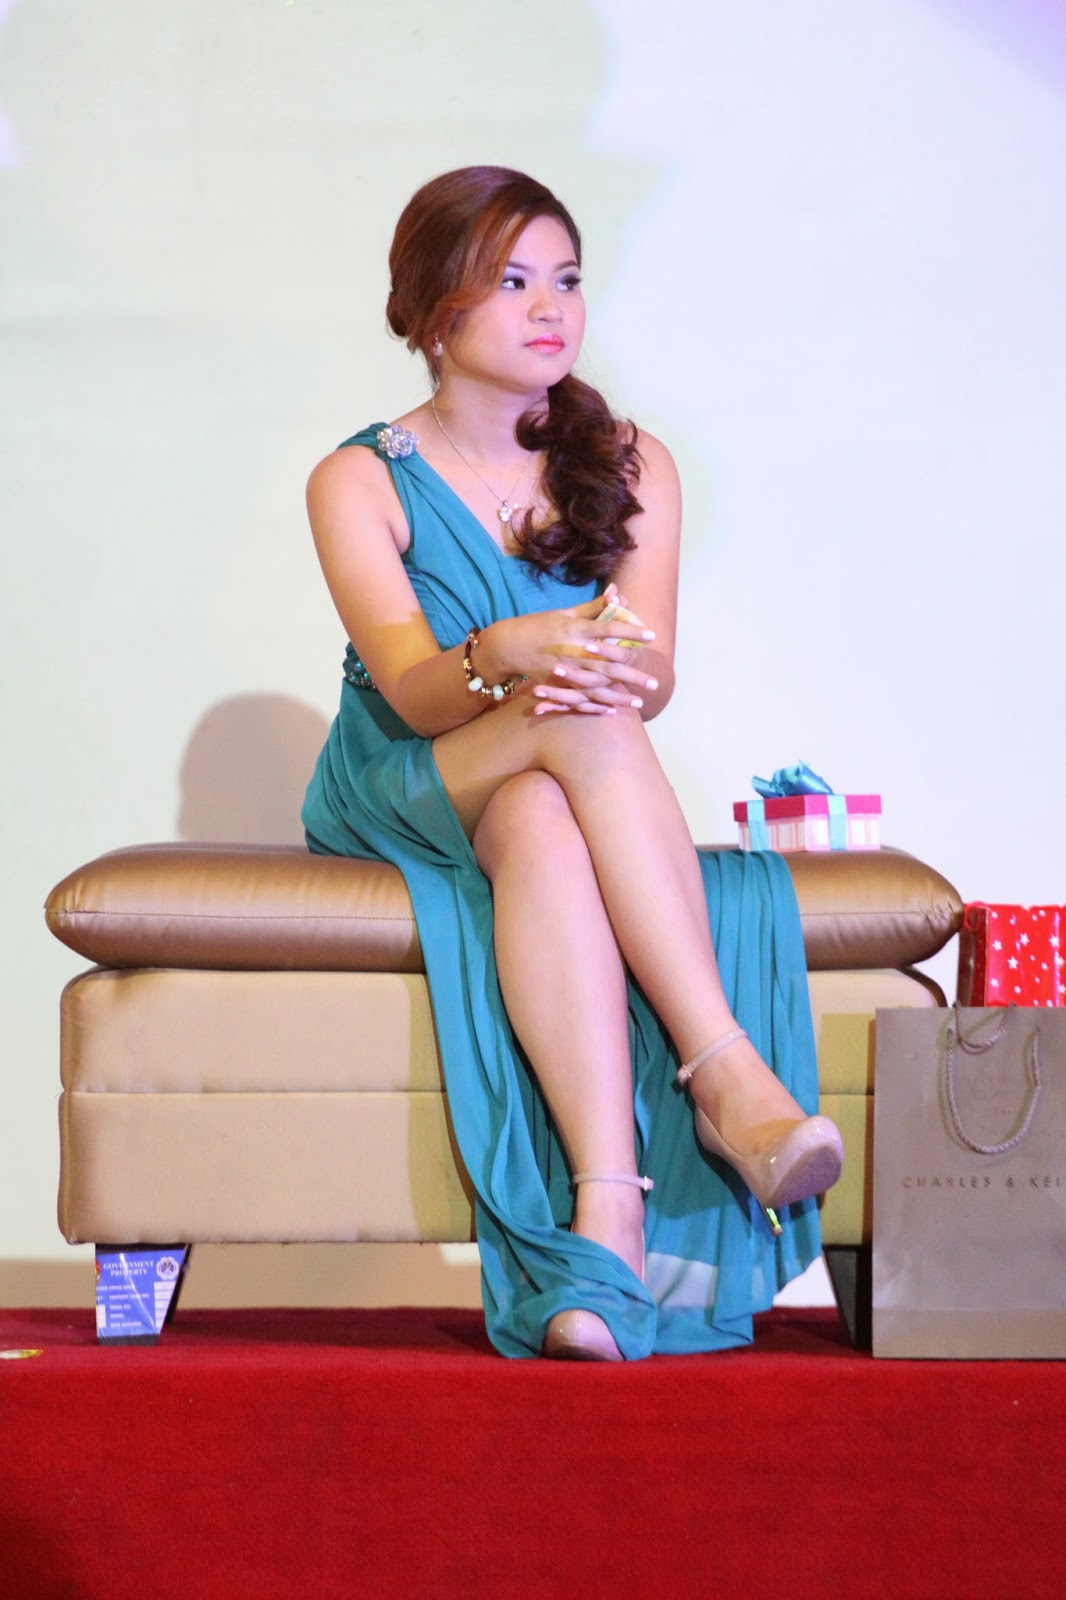 Lizette at her Debut Party, 2013